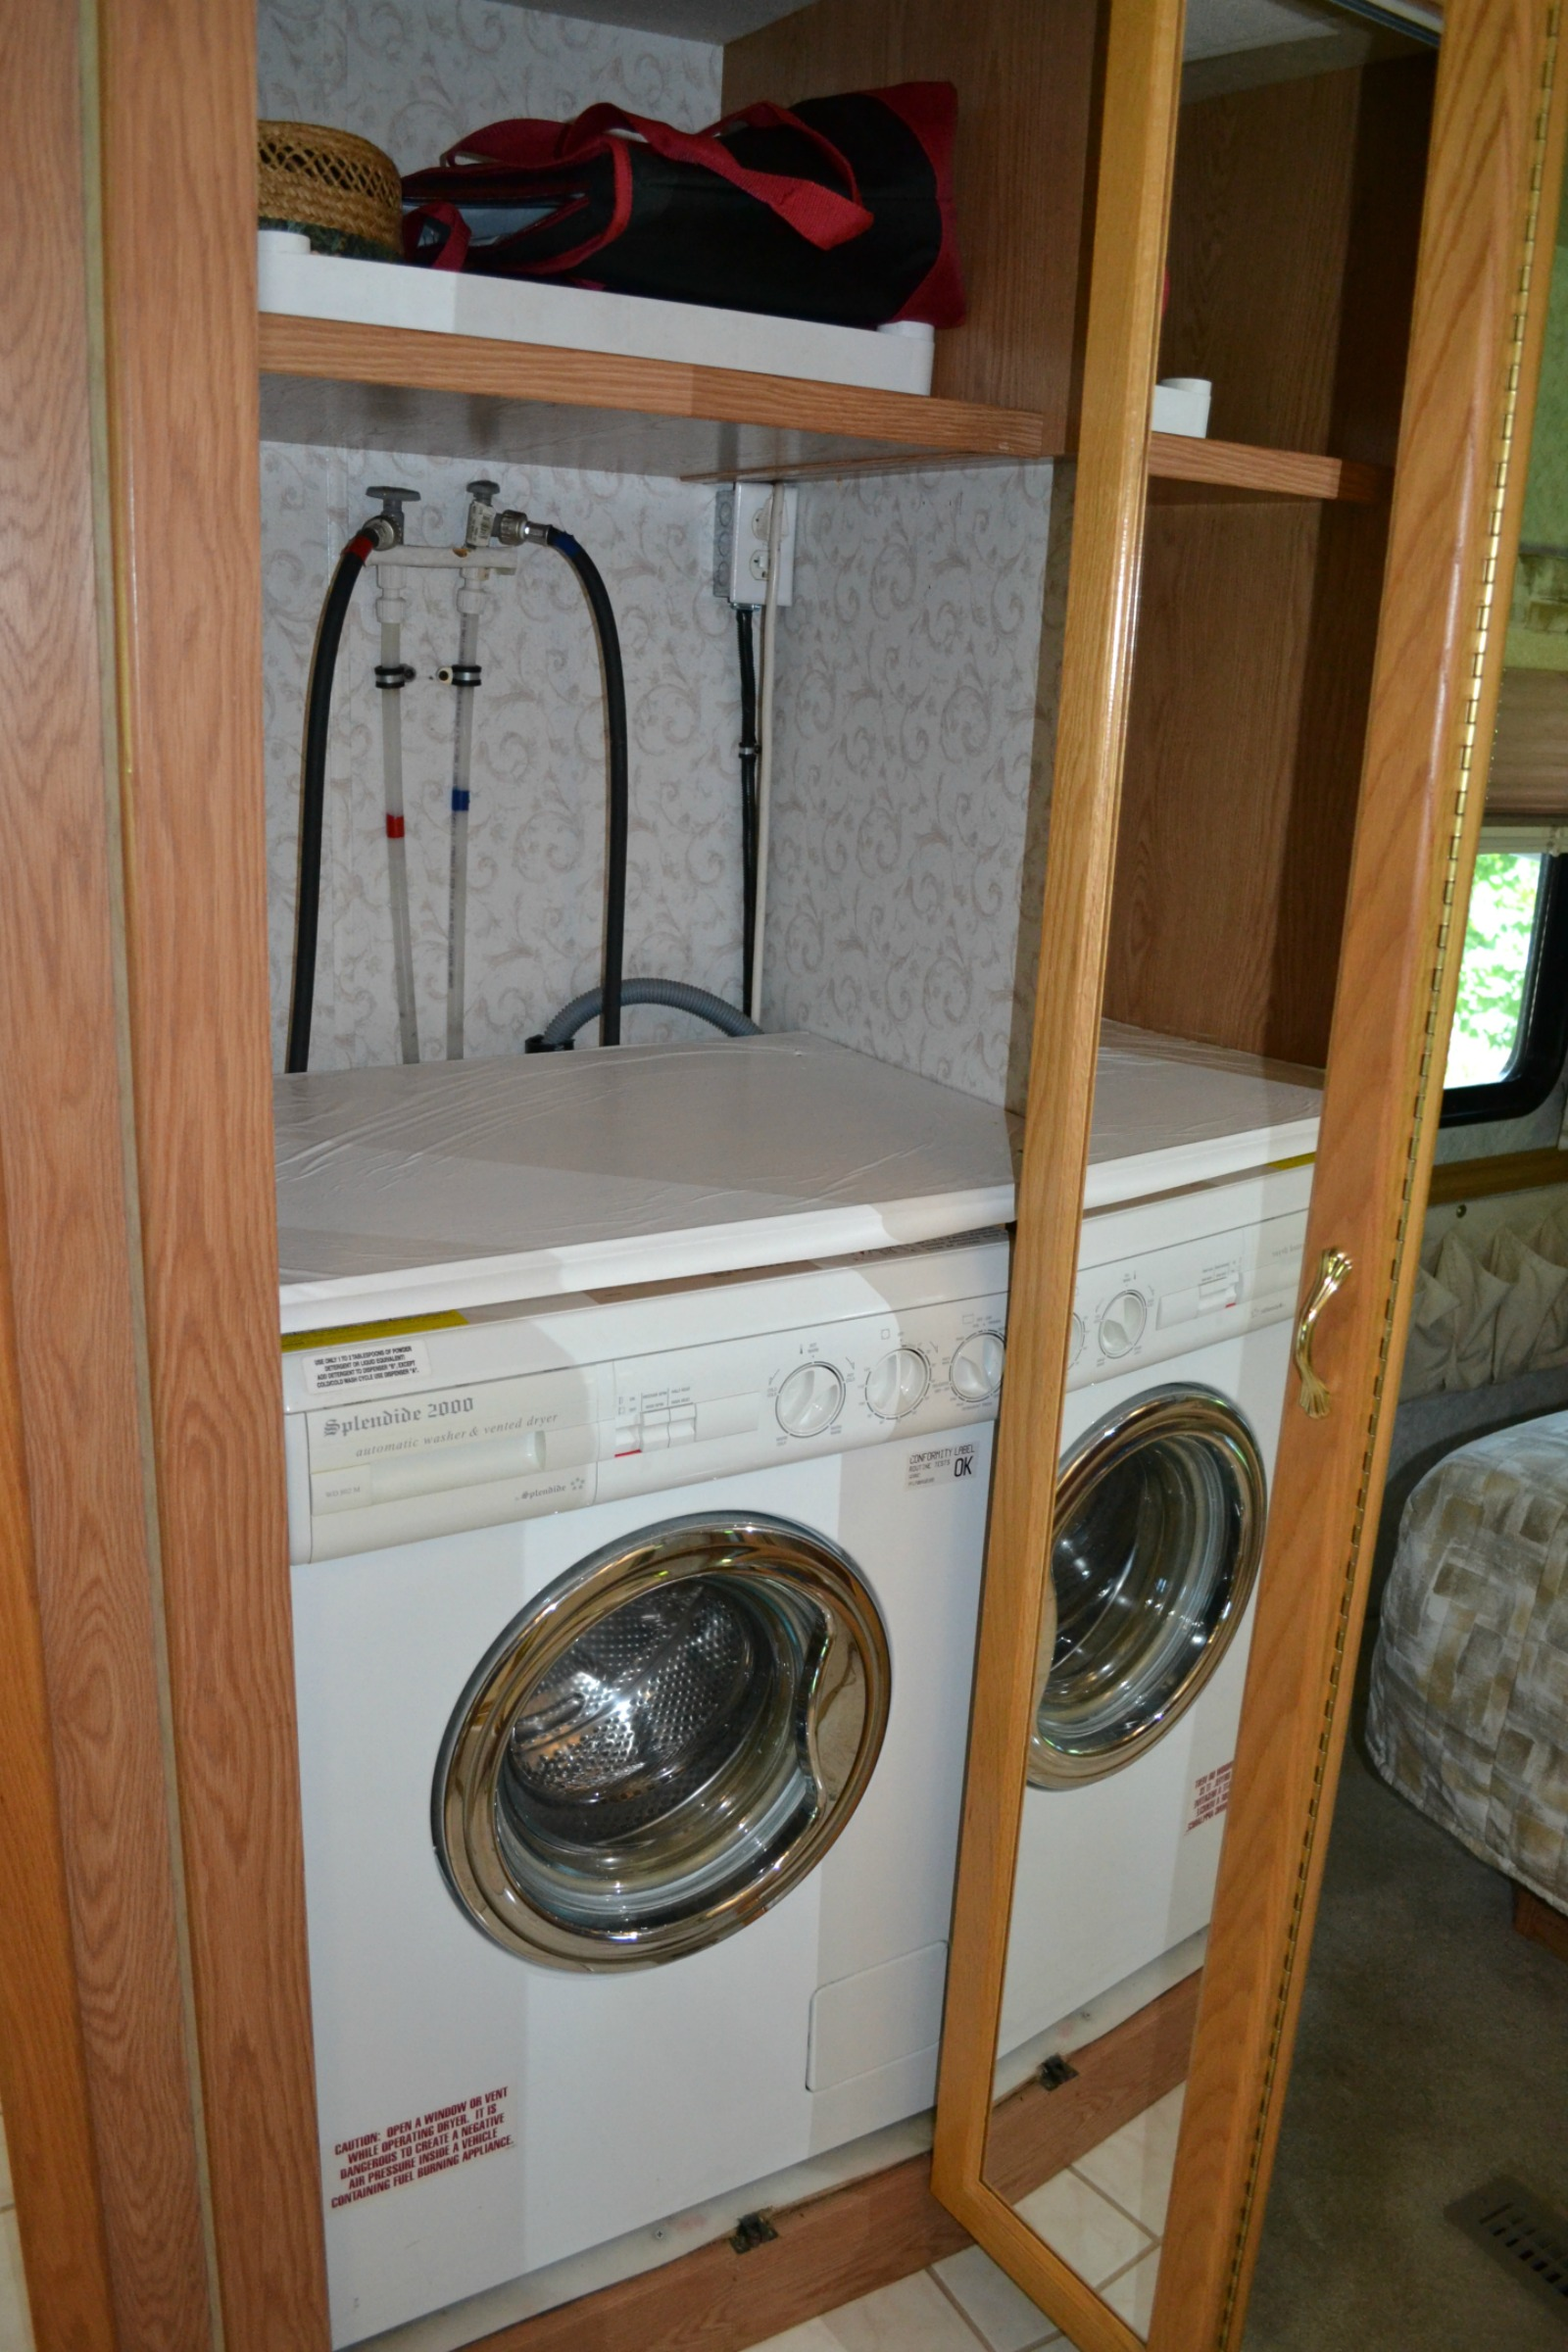 rv travel, camping, inside rv, washer and dryer in rv